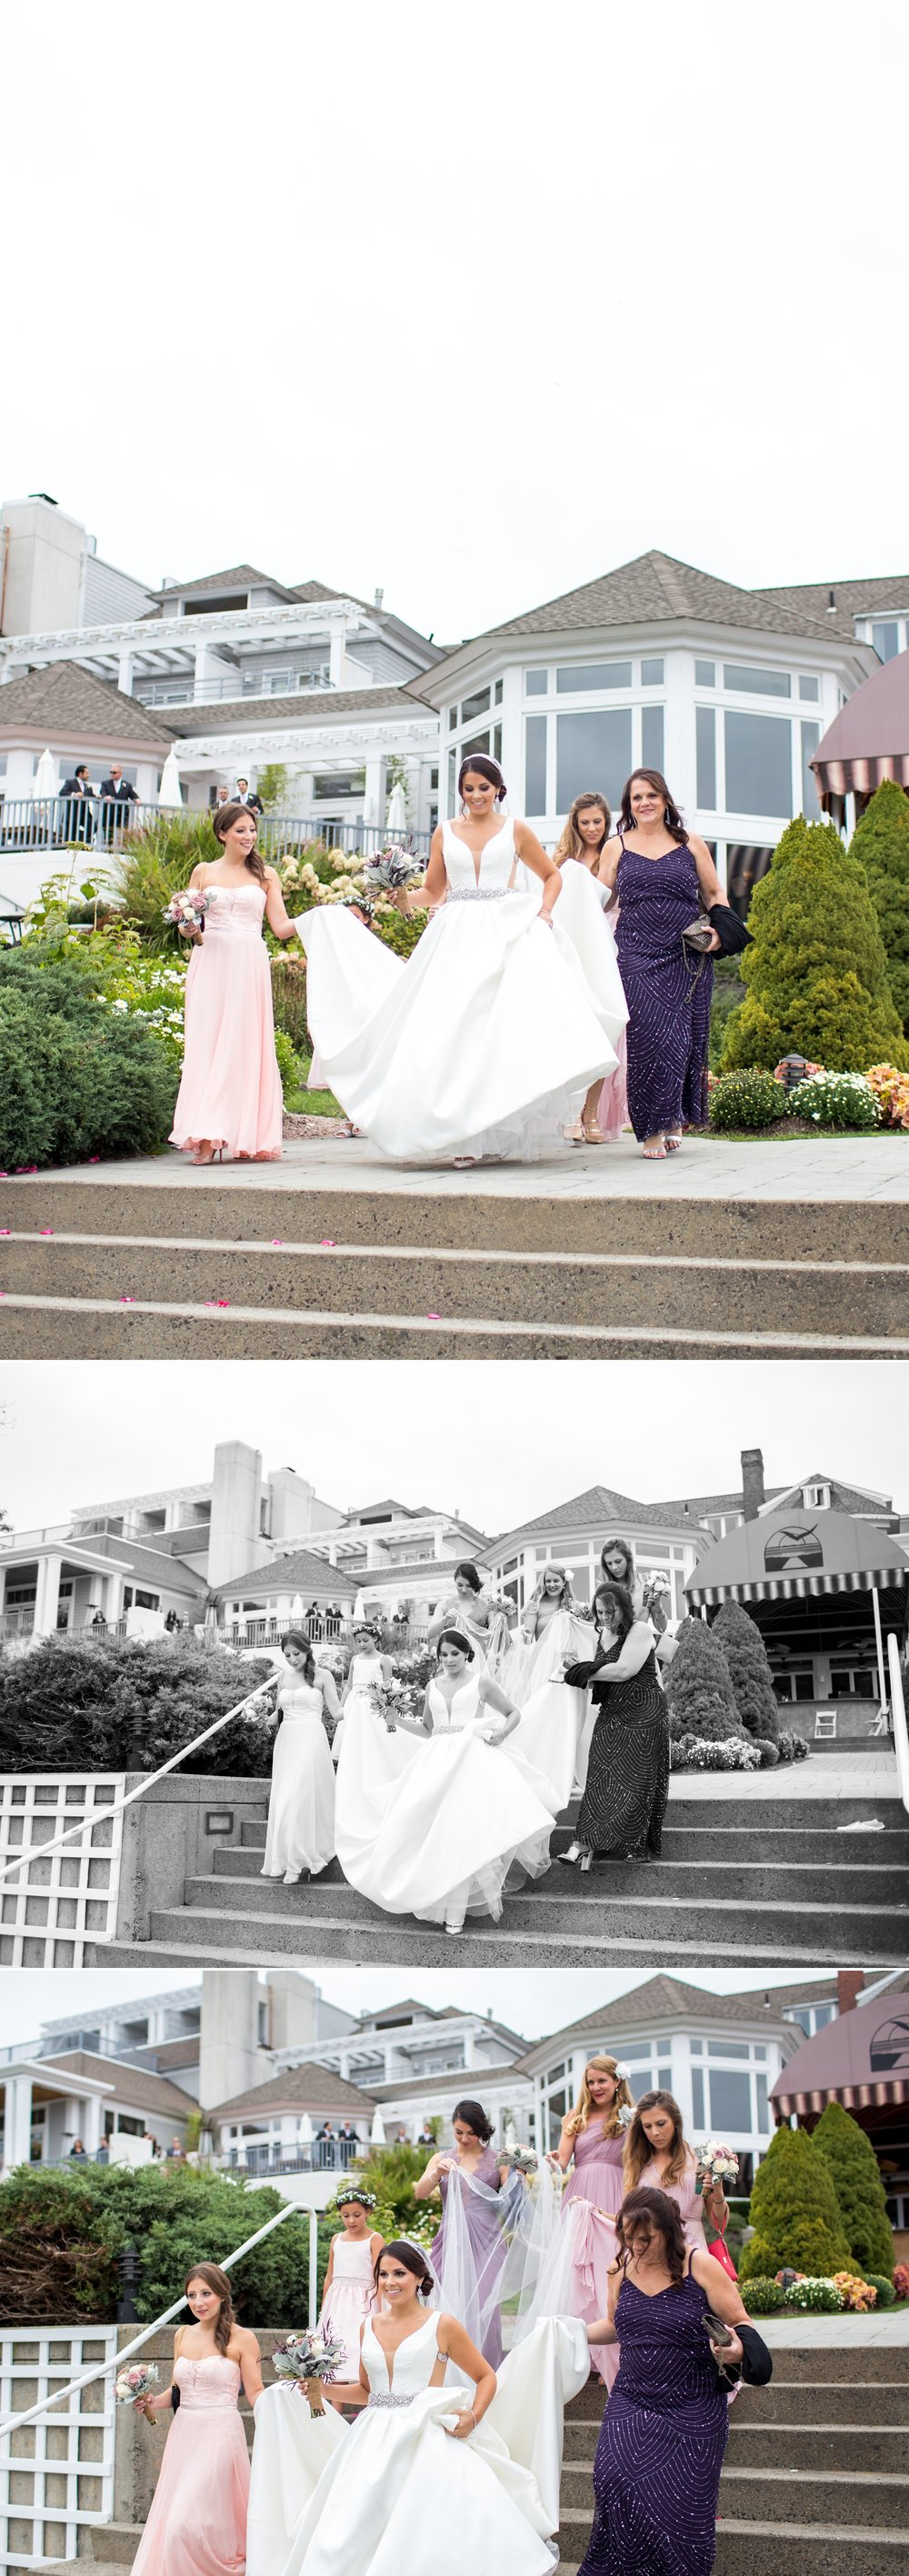 Westbrook, CT Wedding at The Water's Edge Resort & Spa | CT, NYC + Destination Luxury Wedding + Engagement Photographer | Shaina Lee Photography